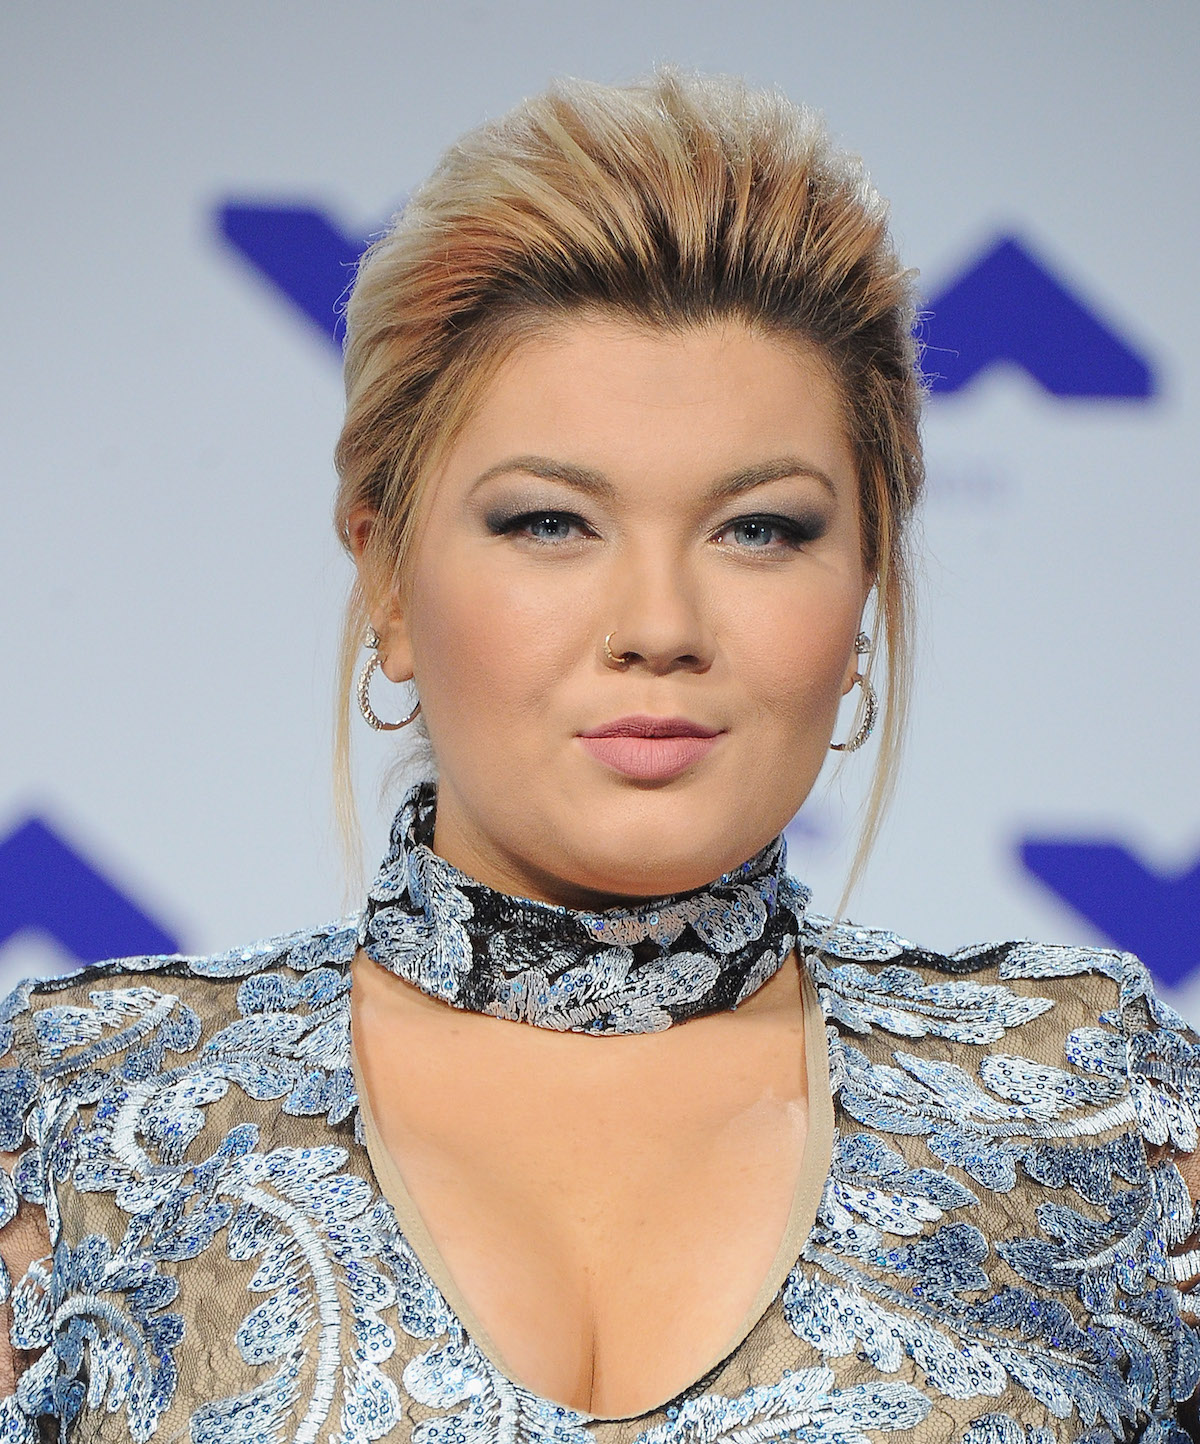 'Teen Mom OG' Star Amber Portwood Reveals She Hasn't Seen Her Daughter in a Shockingly Long Time